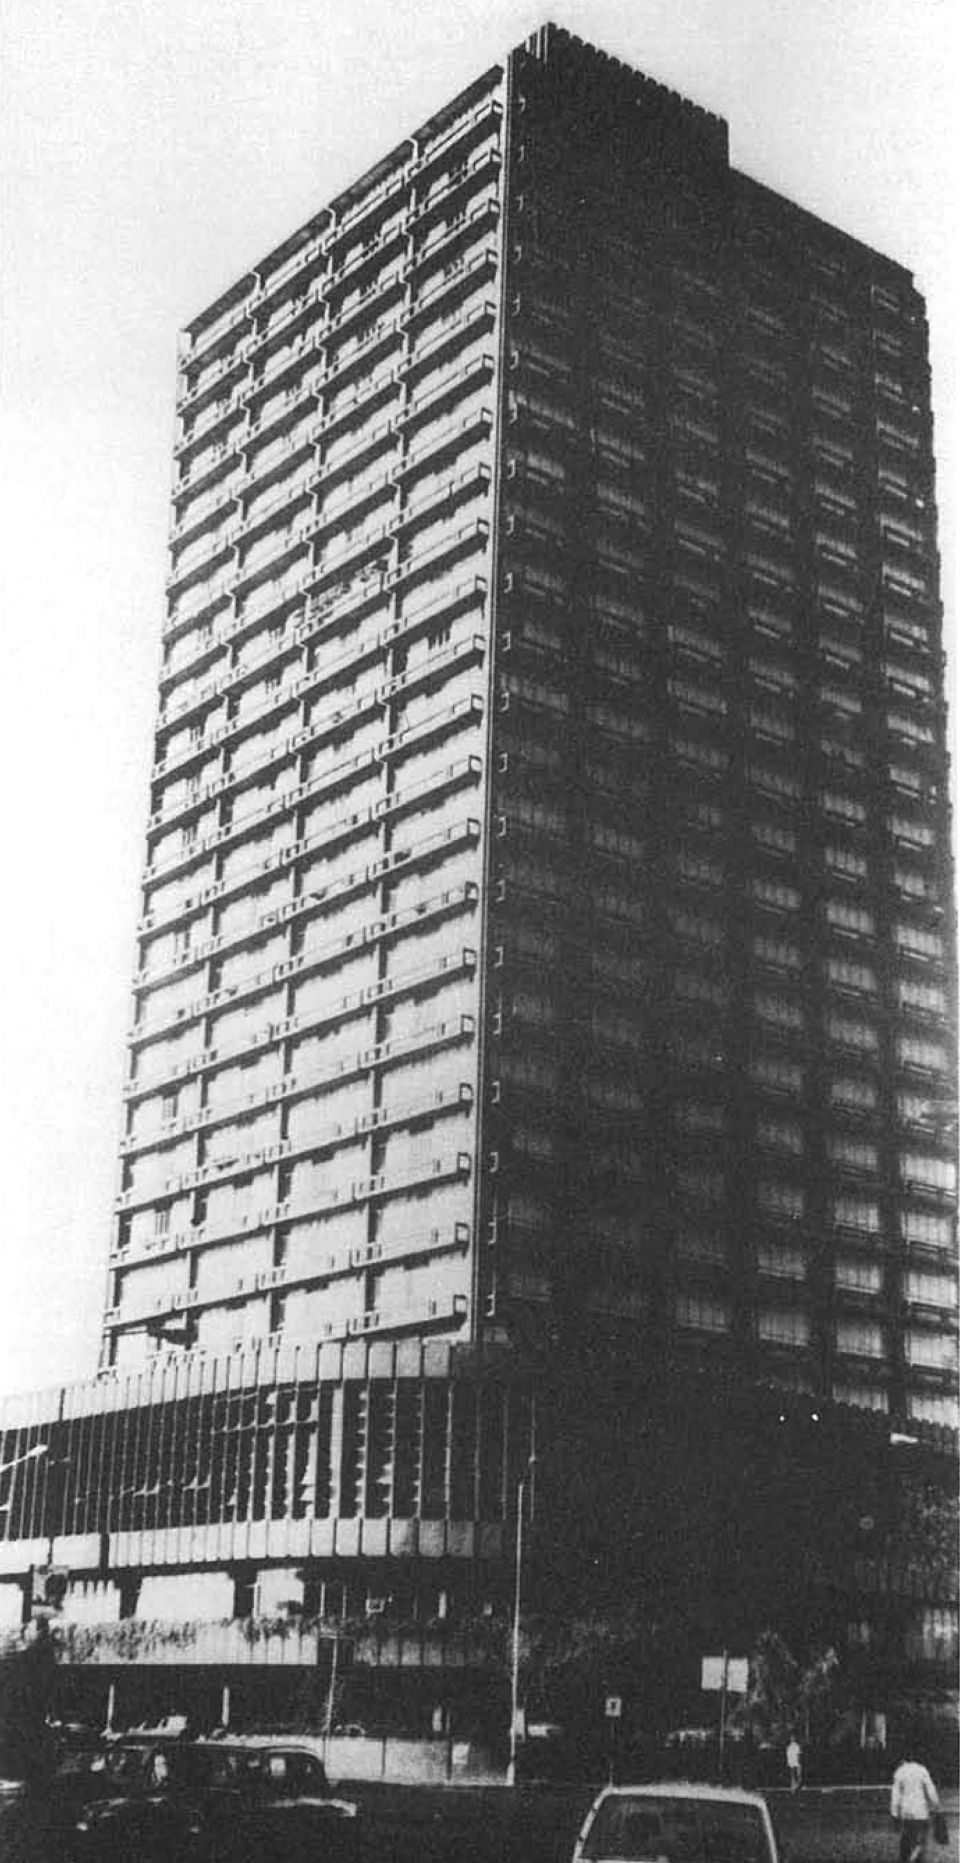 Indian Express Towers, photographed circa 1984 for Vistāra - The Architecture of India exhibition